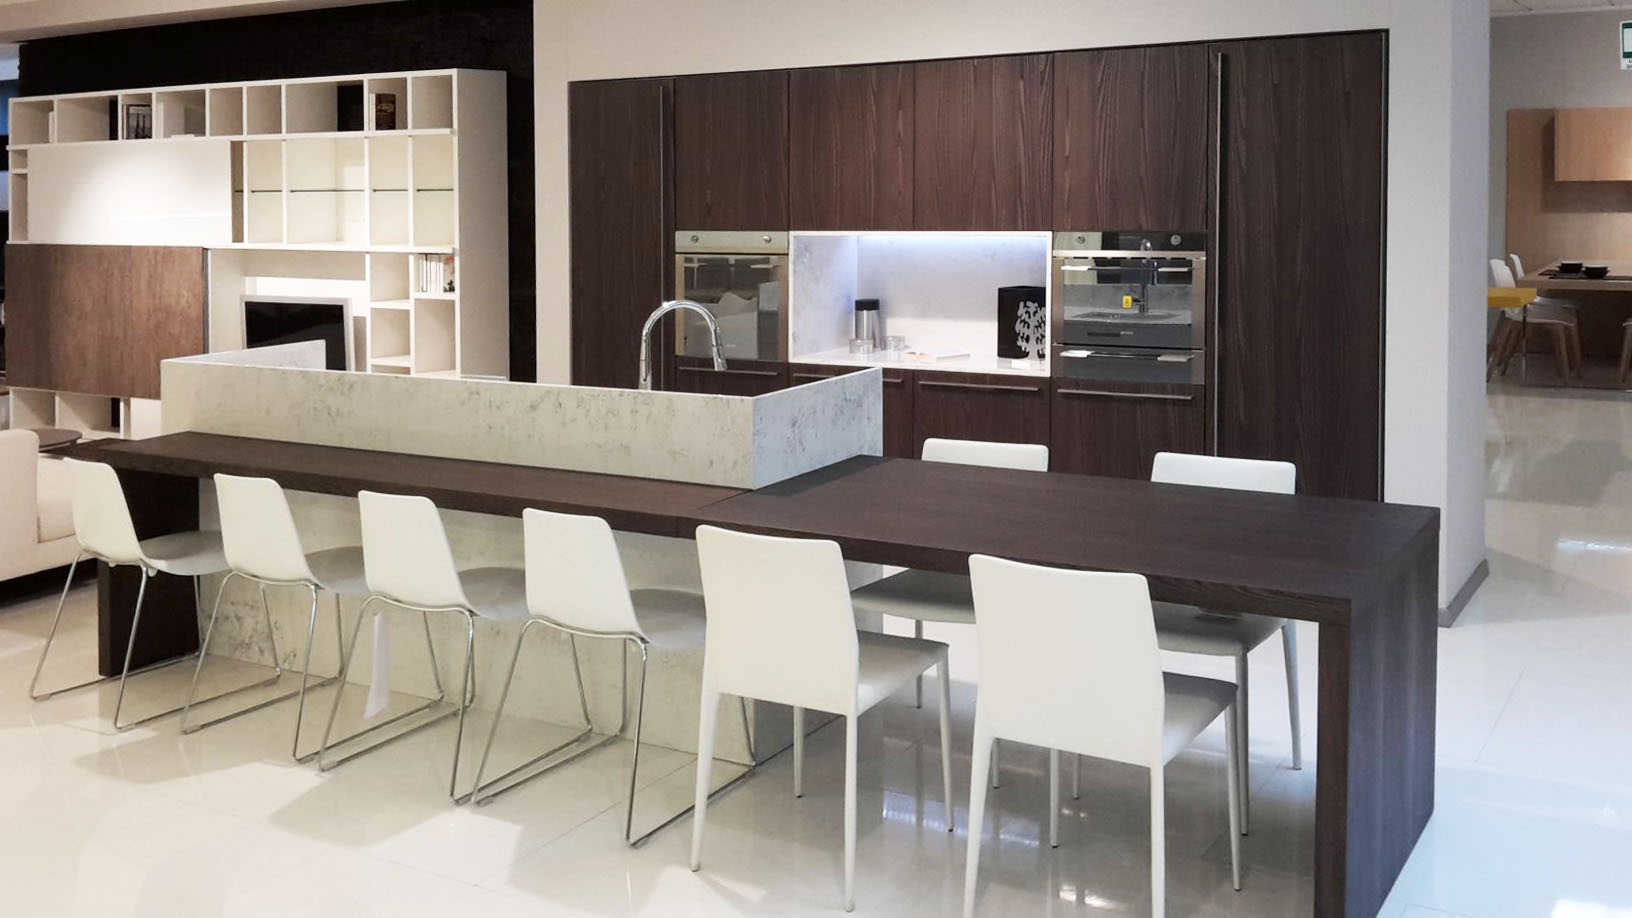 Best Cucine Country Padova Contemporary - harrop.us - harrop.us